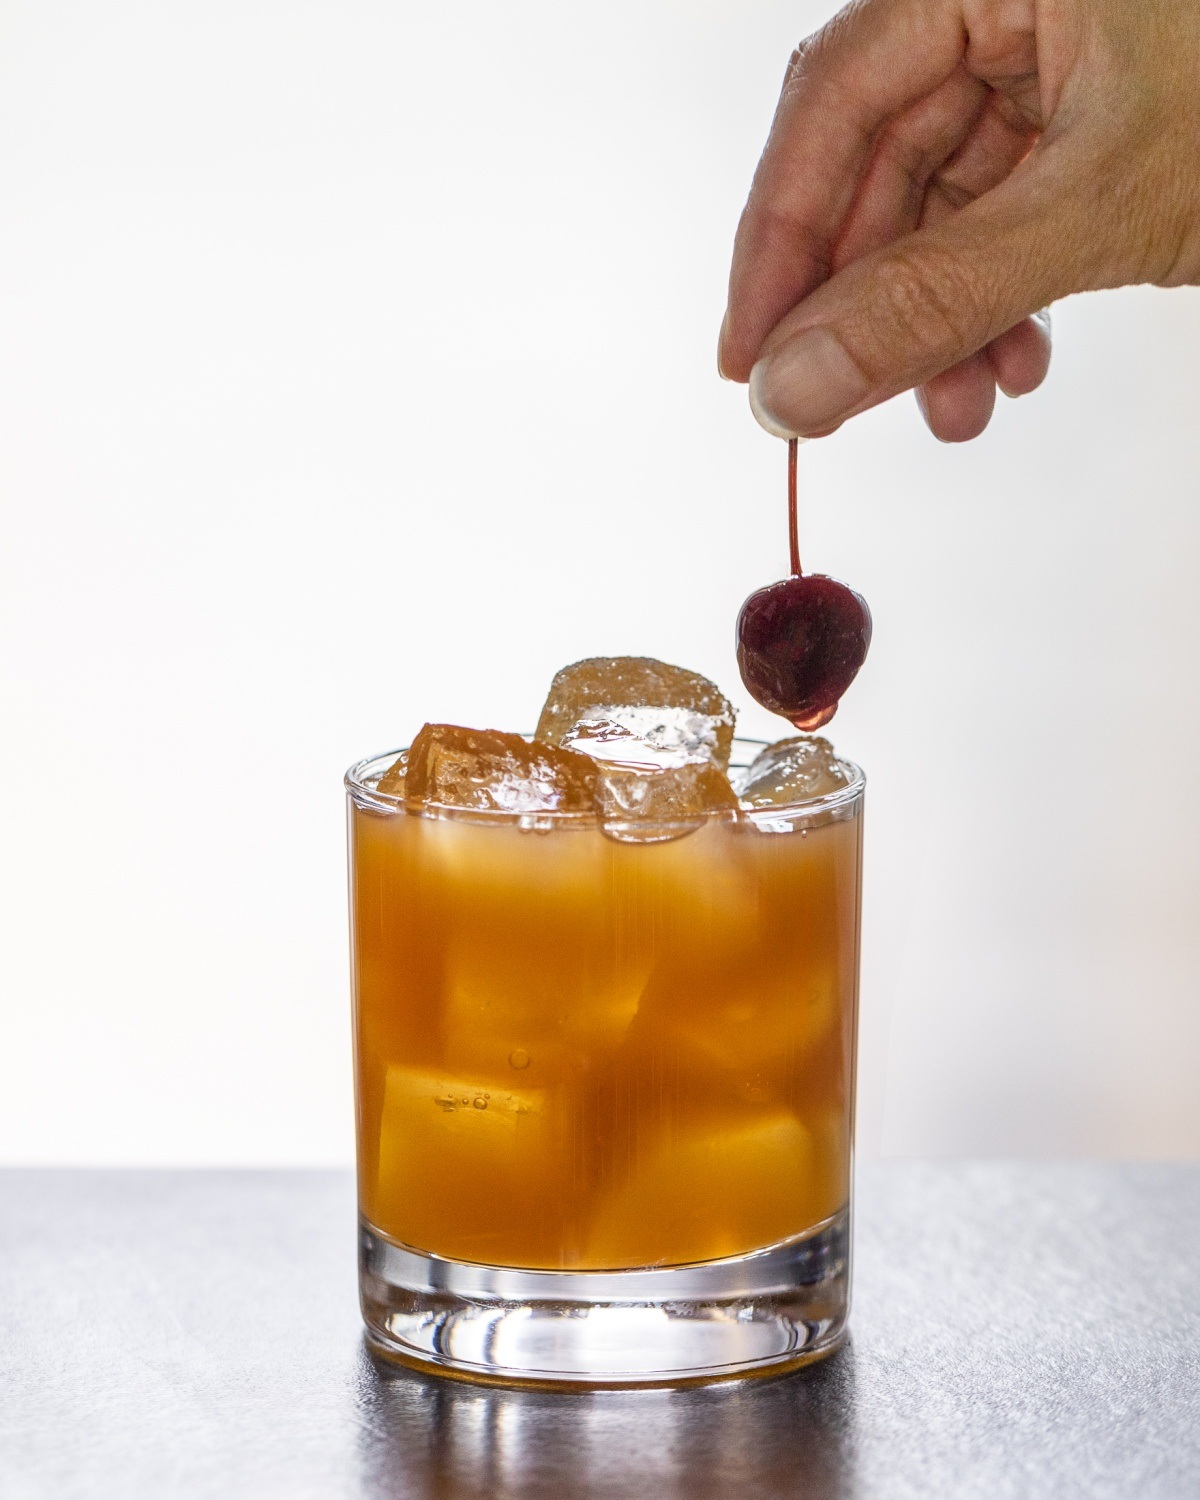 09-2019_OTOTO_Cocktail_Final Images_Web-Res_17